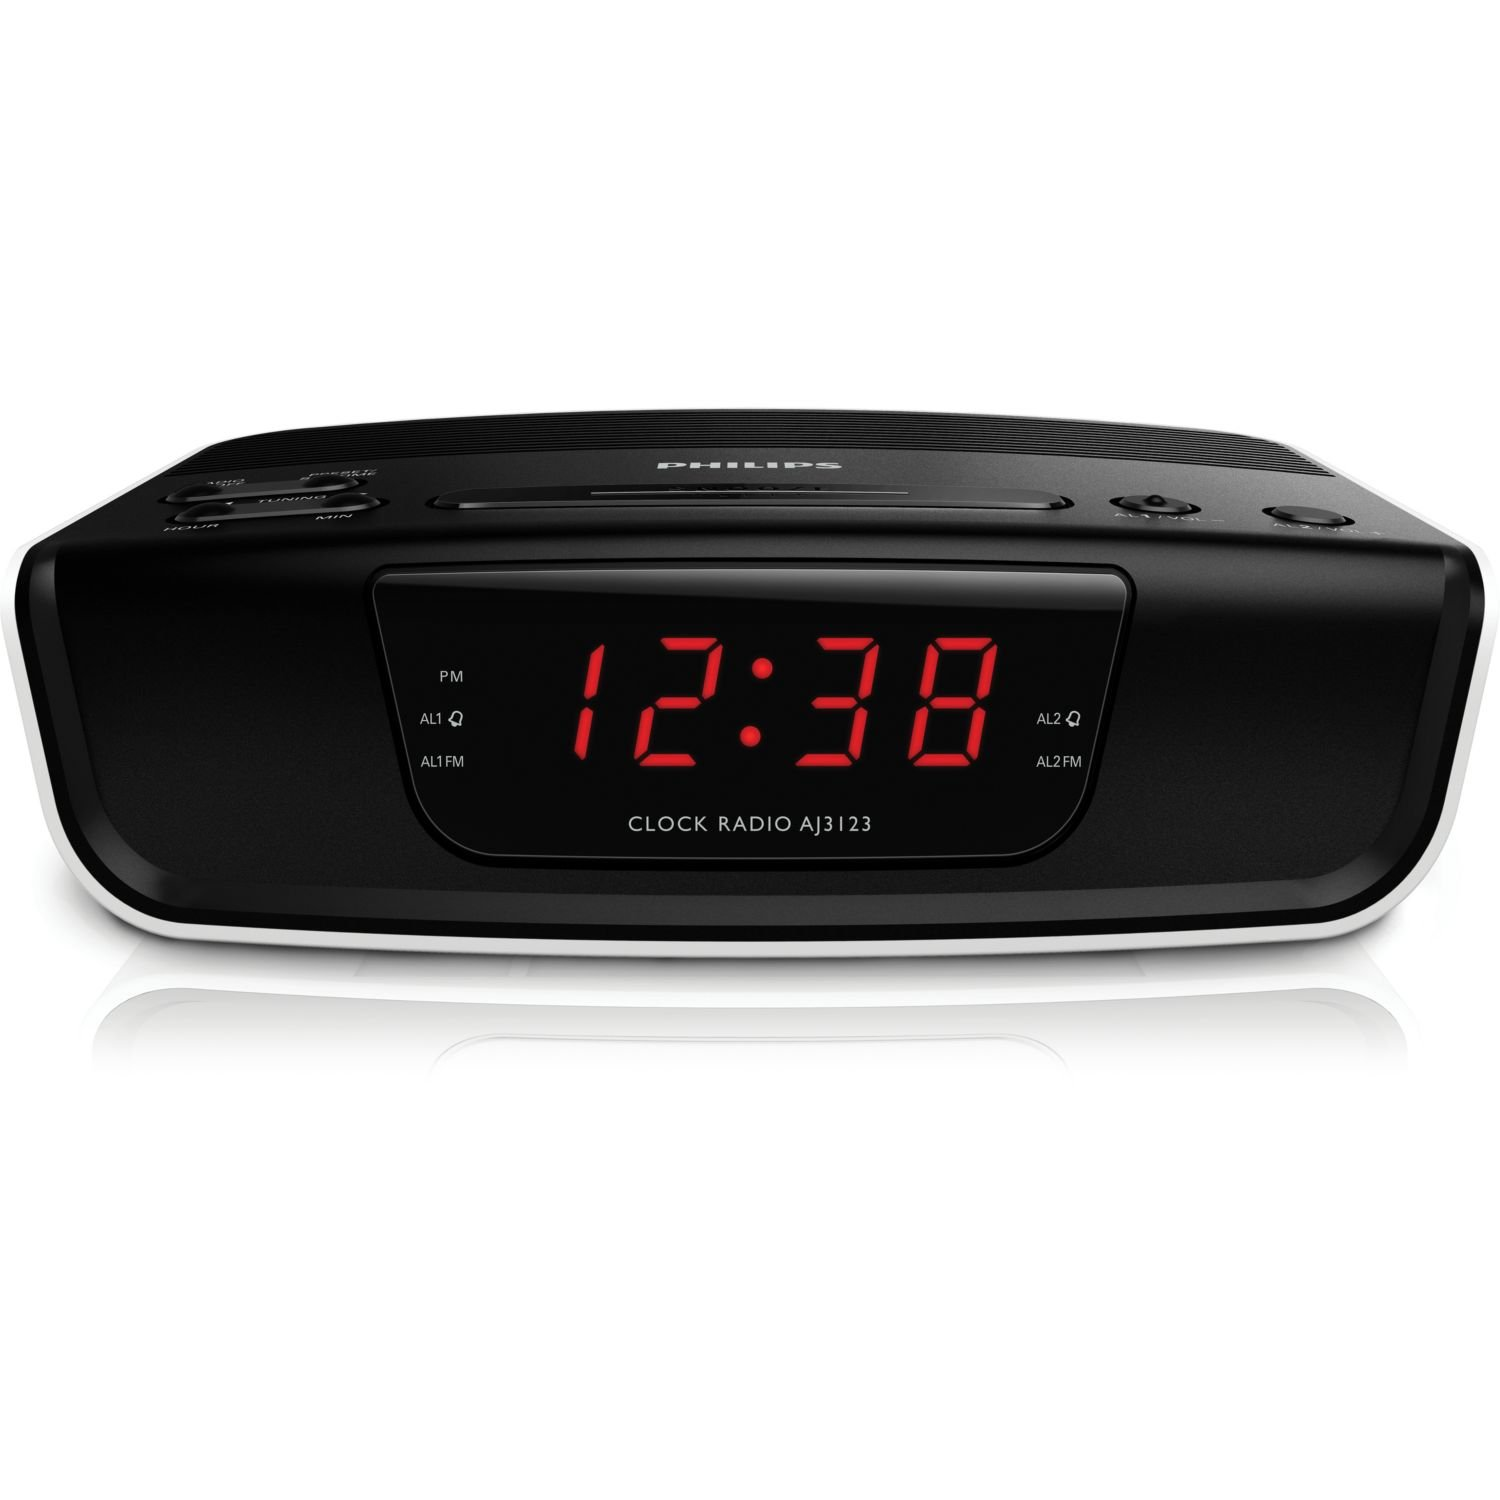 philips aj3700 radio r 233 veil avec tuner fm projection de l heure au plafond grand 233 cran lcd